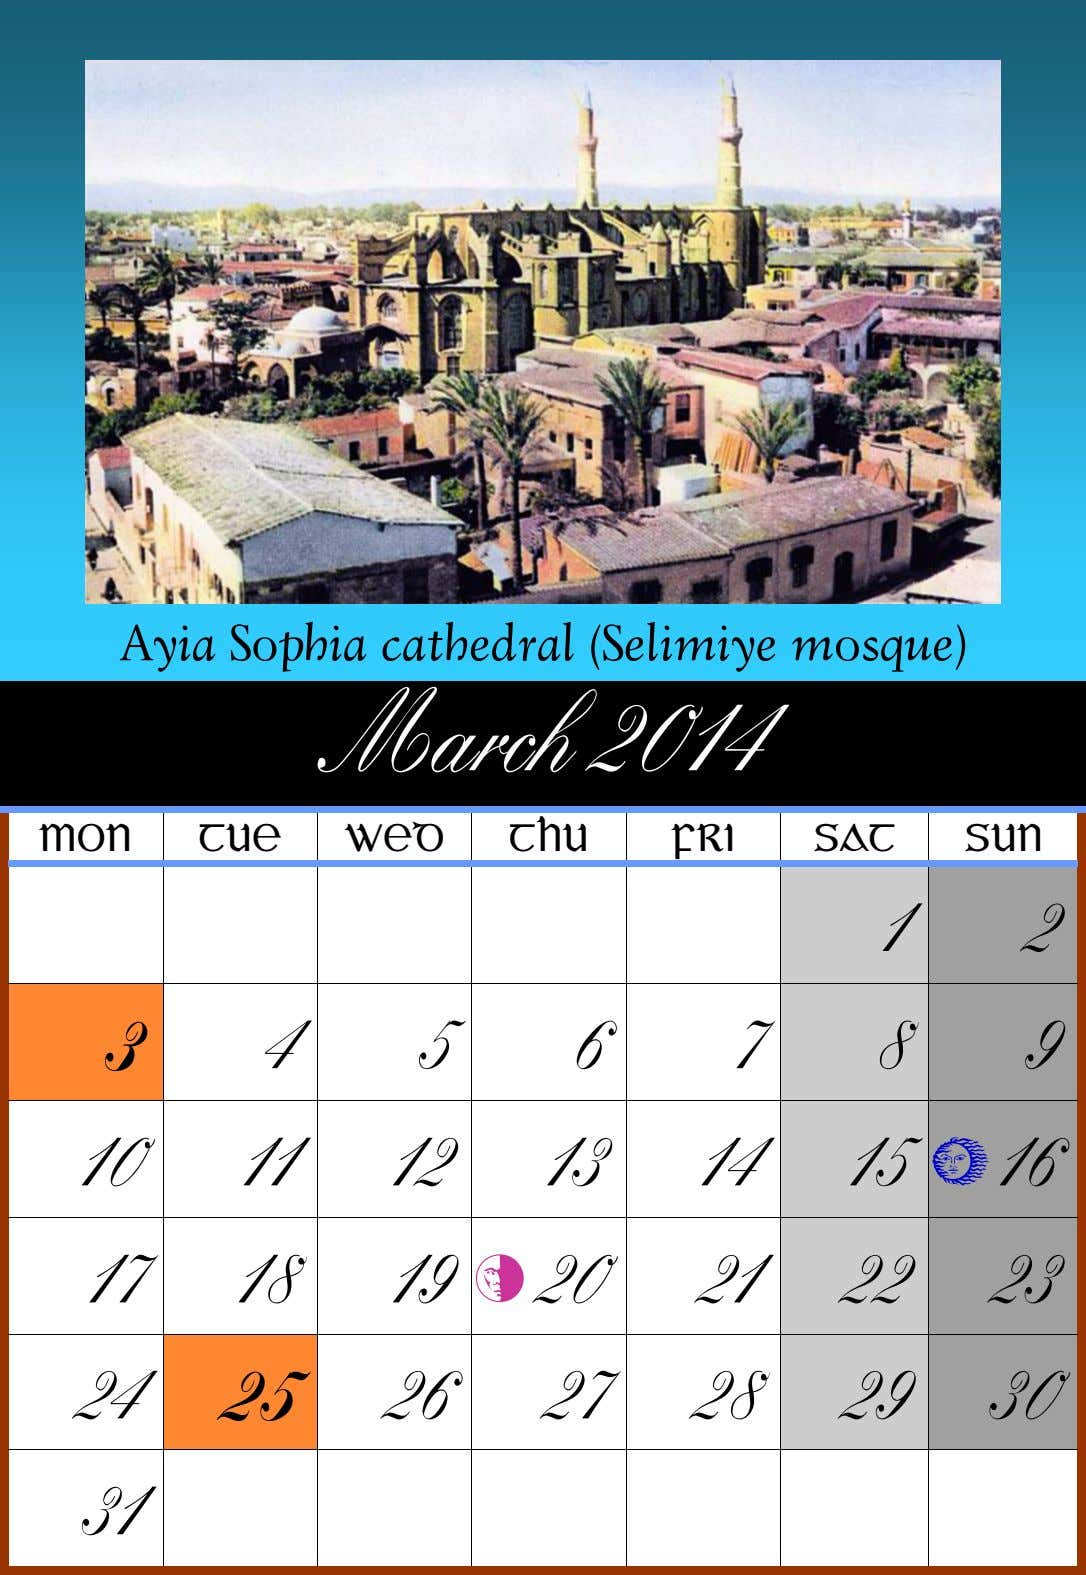 Ayia Sophia cathedral (Selimiye mosque) March 2014 MON TUE WED THU FRI SAT SUN 1